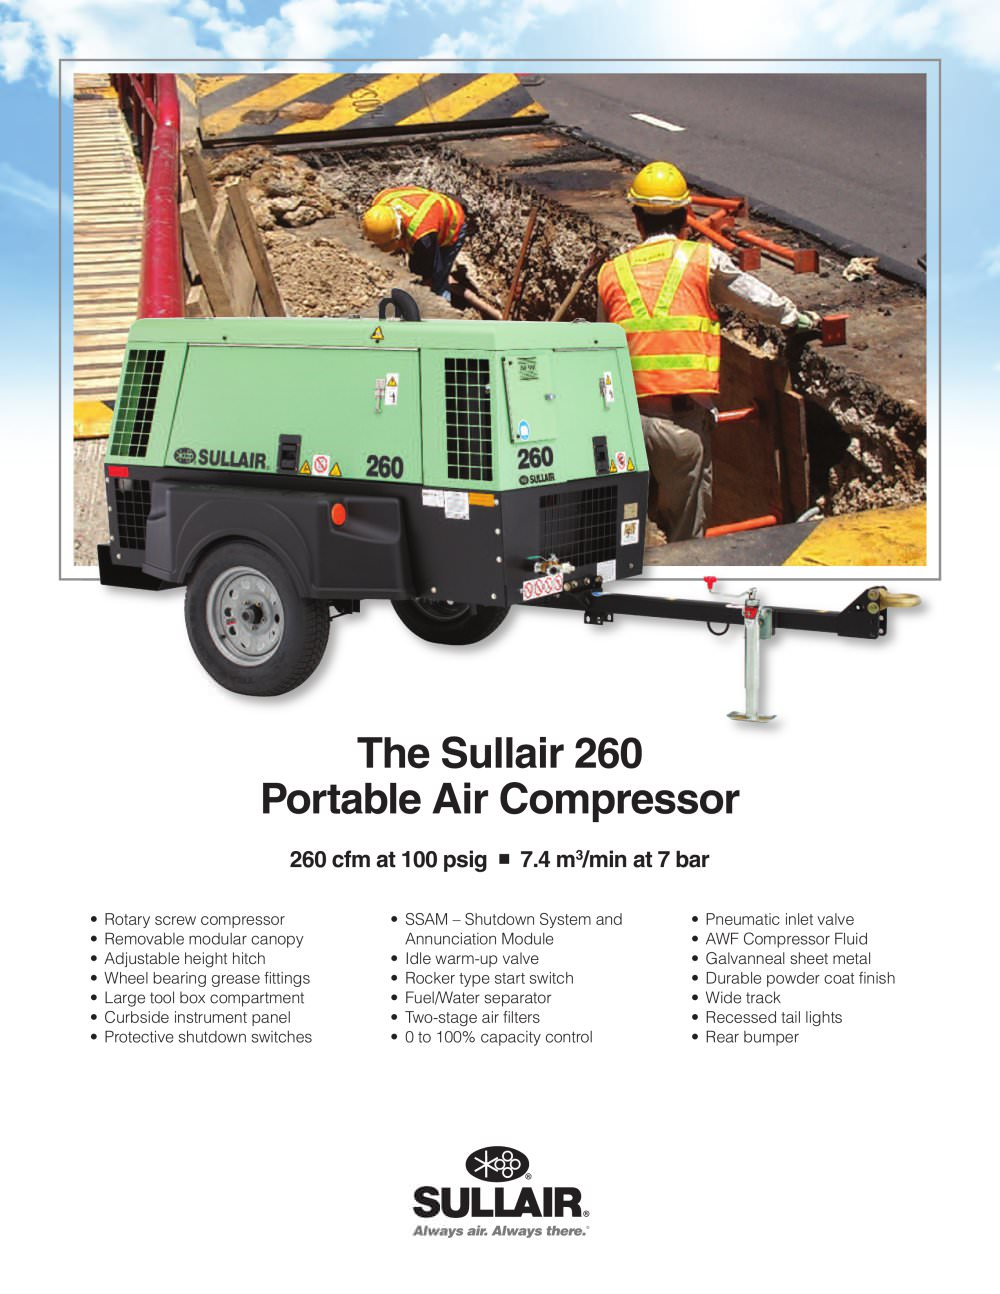 The Sullair 260 Portable Air Compressor - 1 / 2 Pages